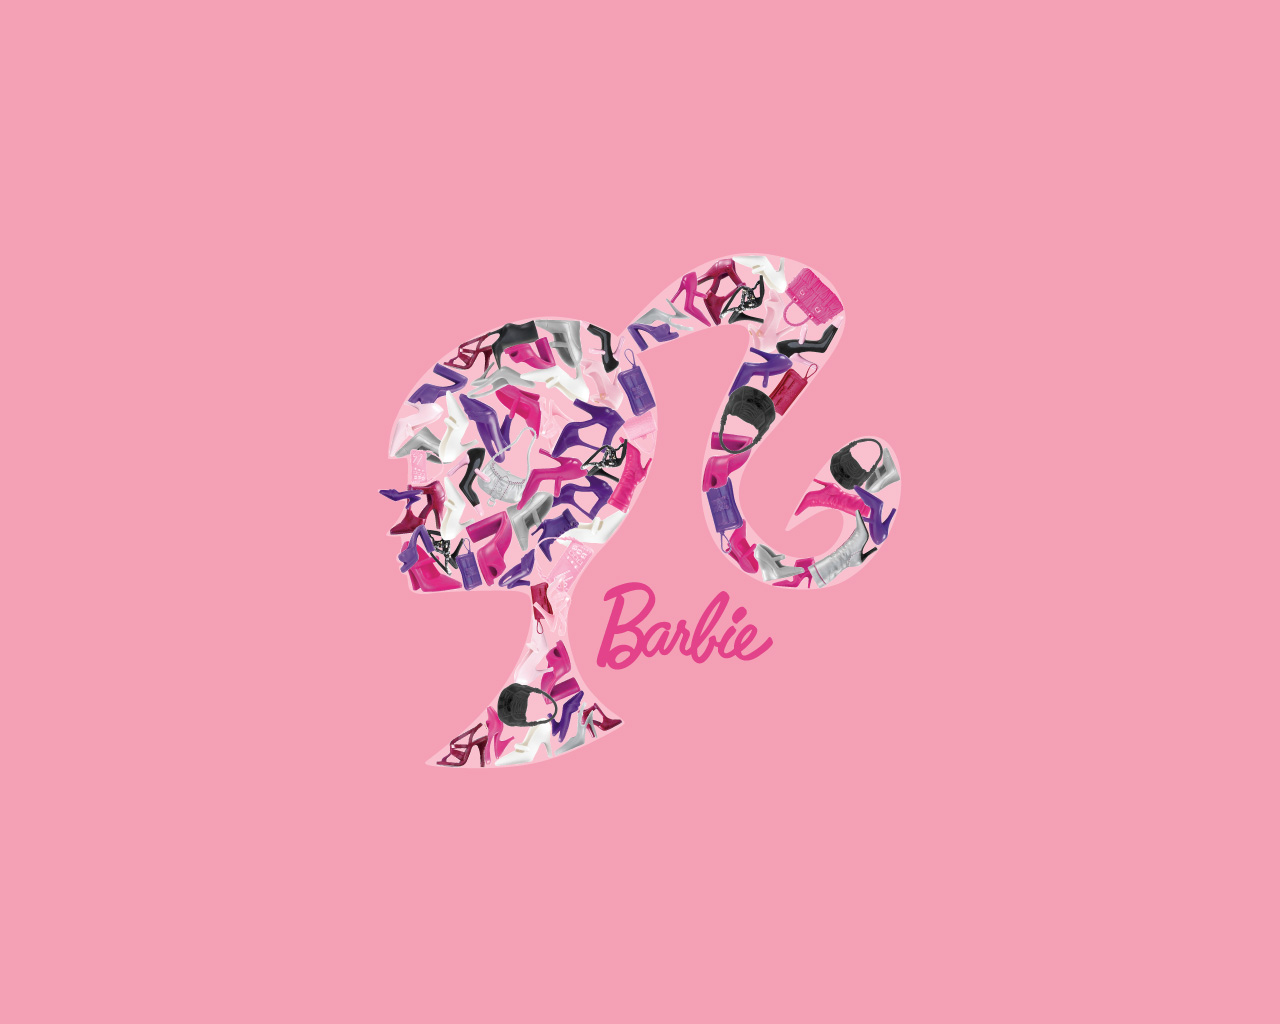 Barbie - Barbie Wallpaper (31795213) - Fanpop